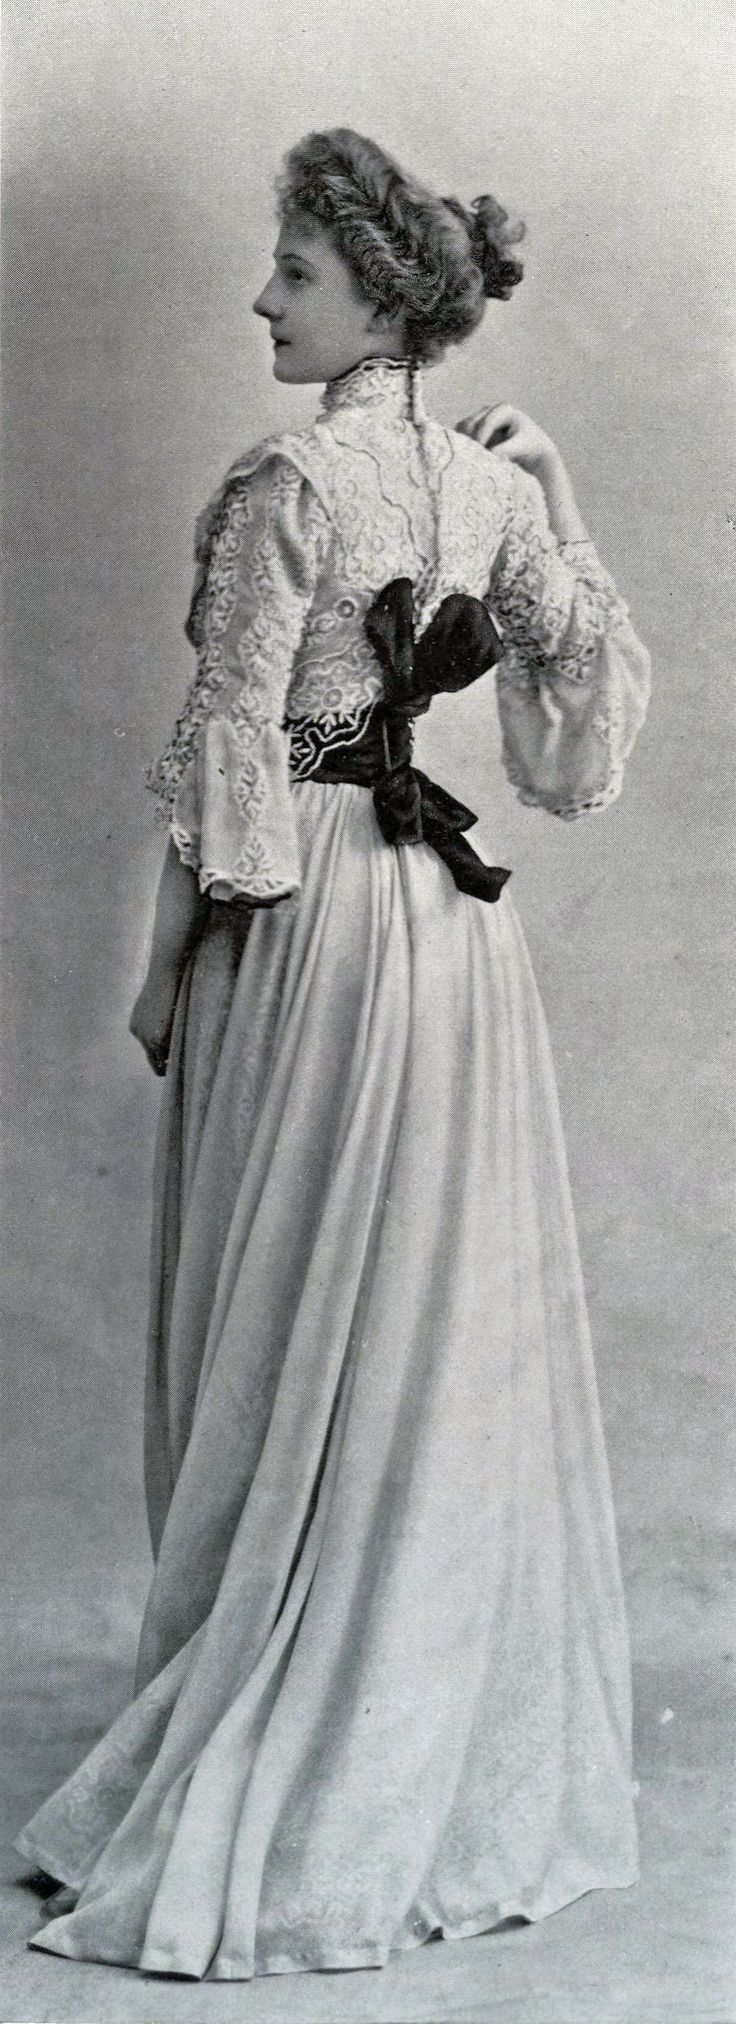 1901 April, Les Modes Paris - Town dress by Laferrière